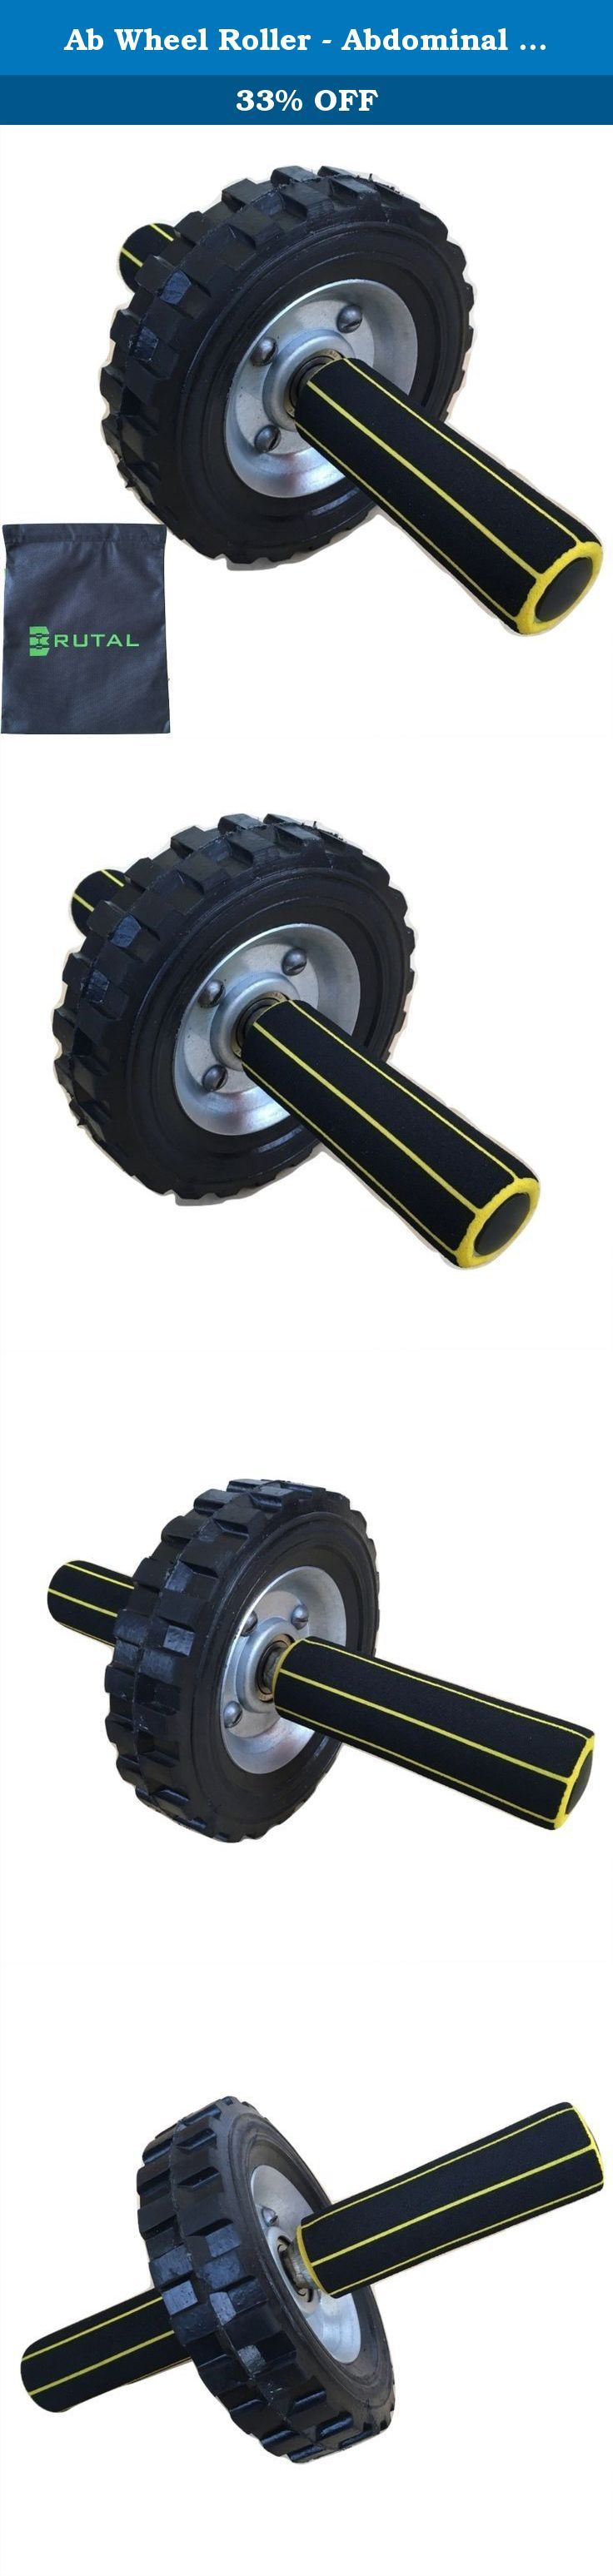 Ab Wheel Roller - Abdominal Carver to Tone Core, Arms & Back - Heavy Use Exercise Gear for Home or Gym Workout - Perfect for Fat Burning & Weight Loss Training - Includes Foam Handles and Carry Bag. Are you tired of waiting forever to see results from your workouts? They take so long to arrive because most routines hit only one muscle group at a time. Now your problem is solved with the BRUTAL AB ROLLER! Don't worry about expensive gym memberships. Our innovative design provides you a…